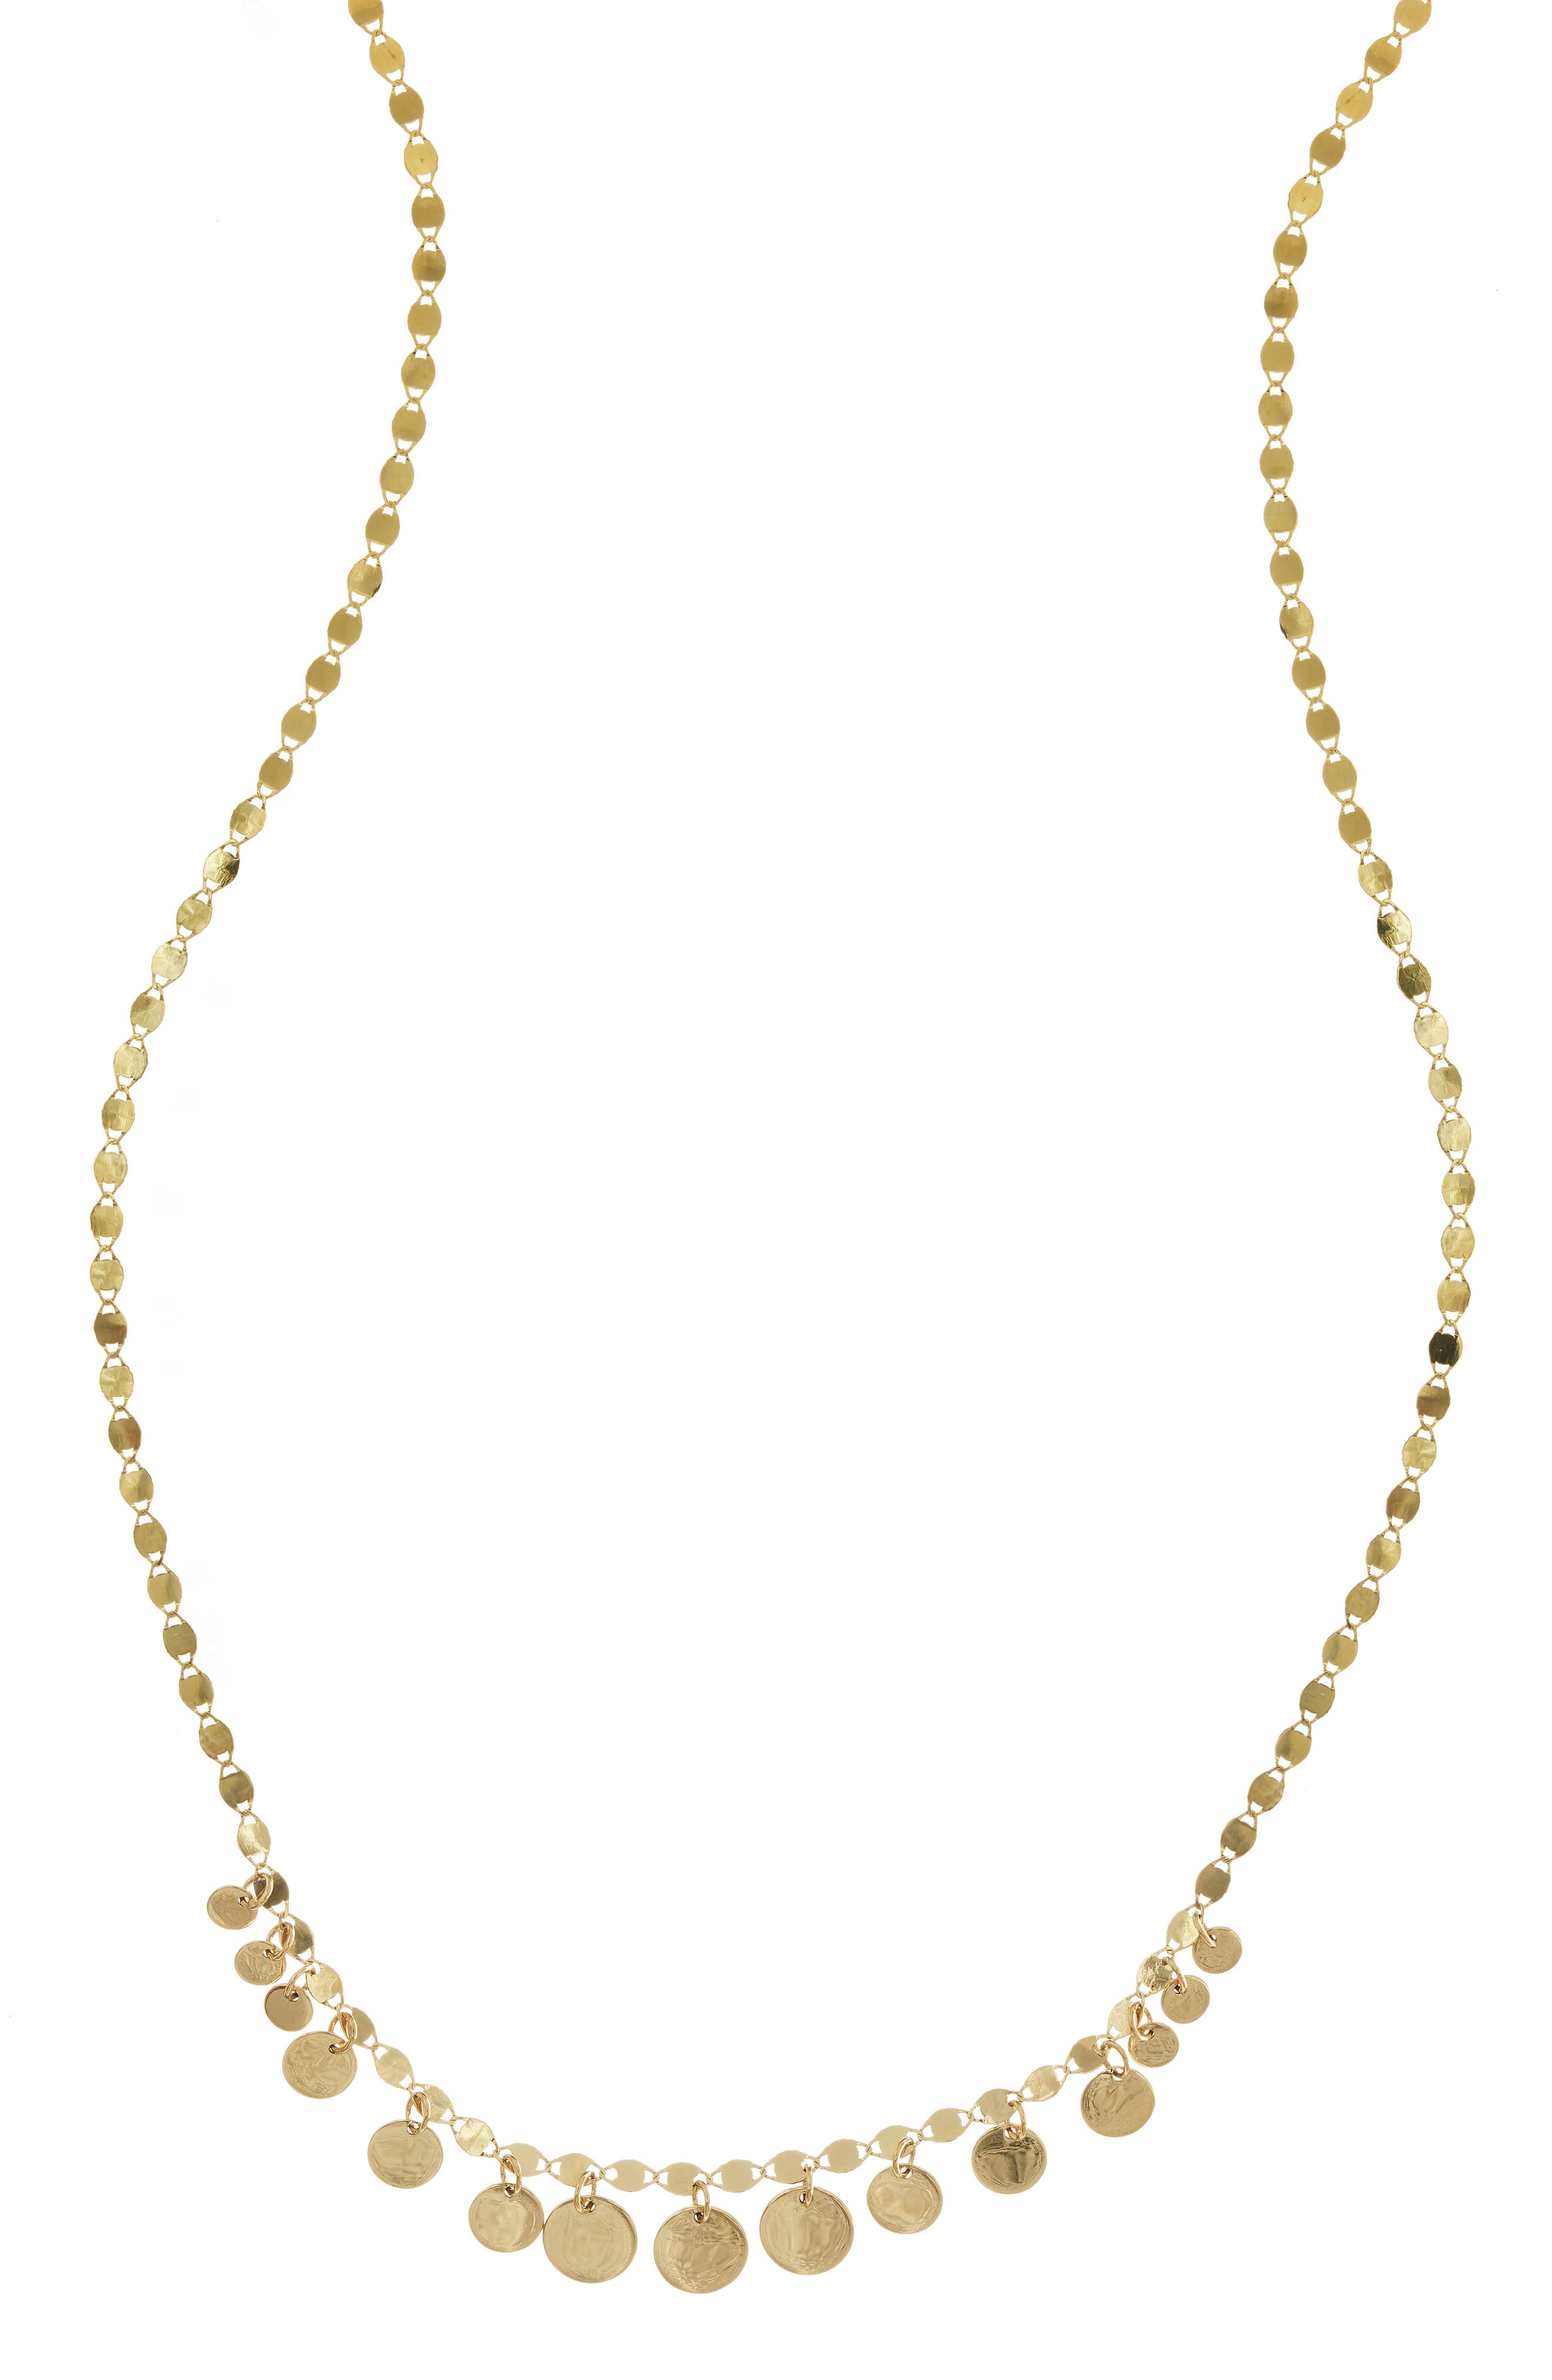 Main Image - Lane Jewelry Frontal Necklace